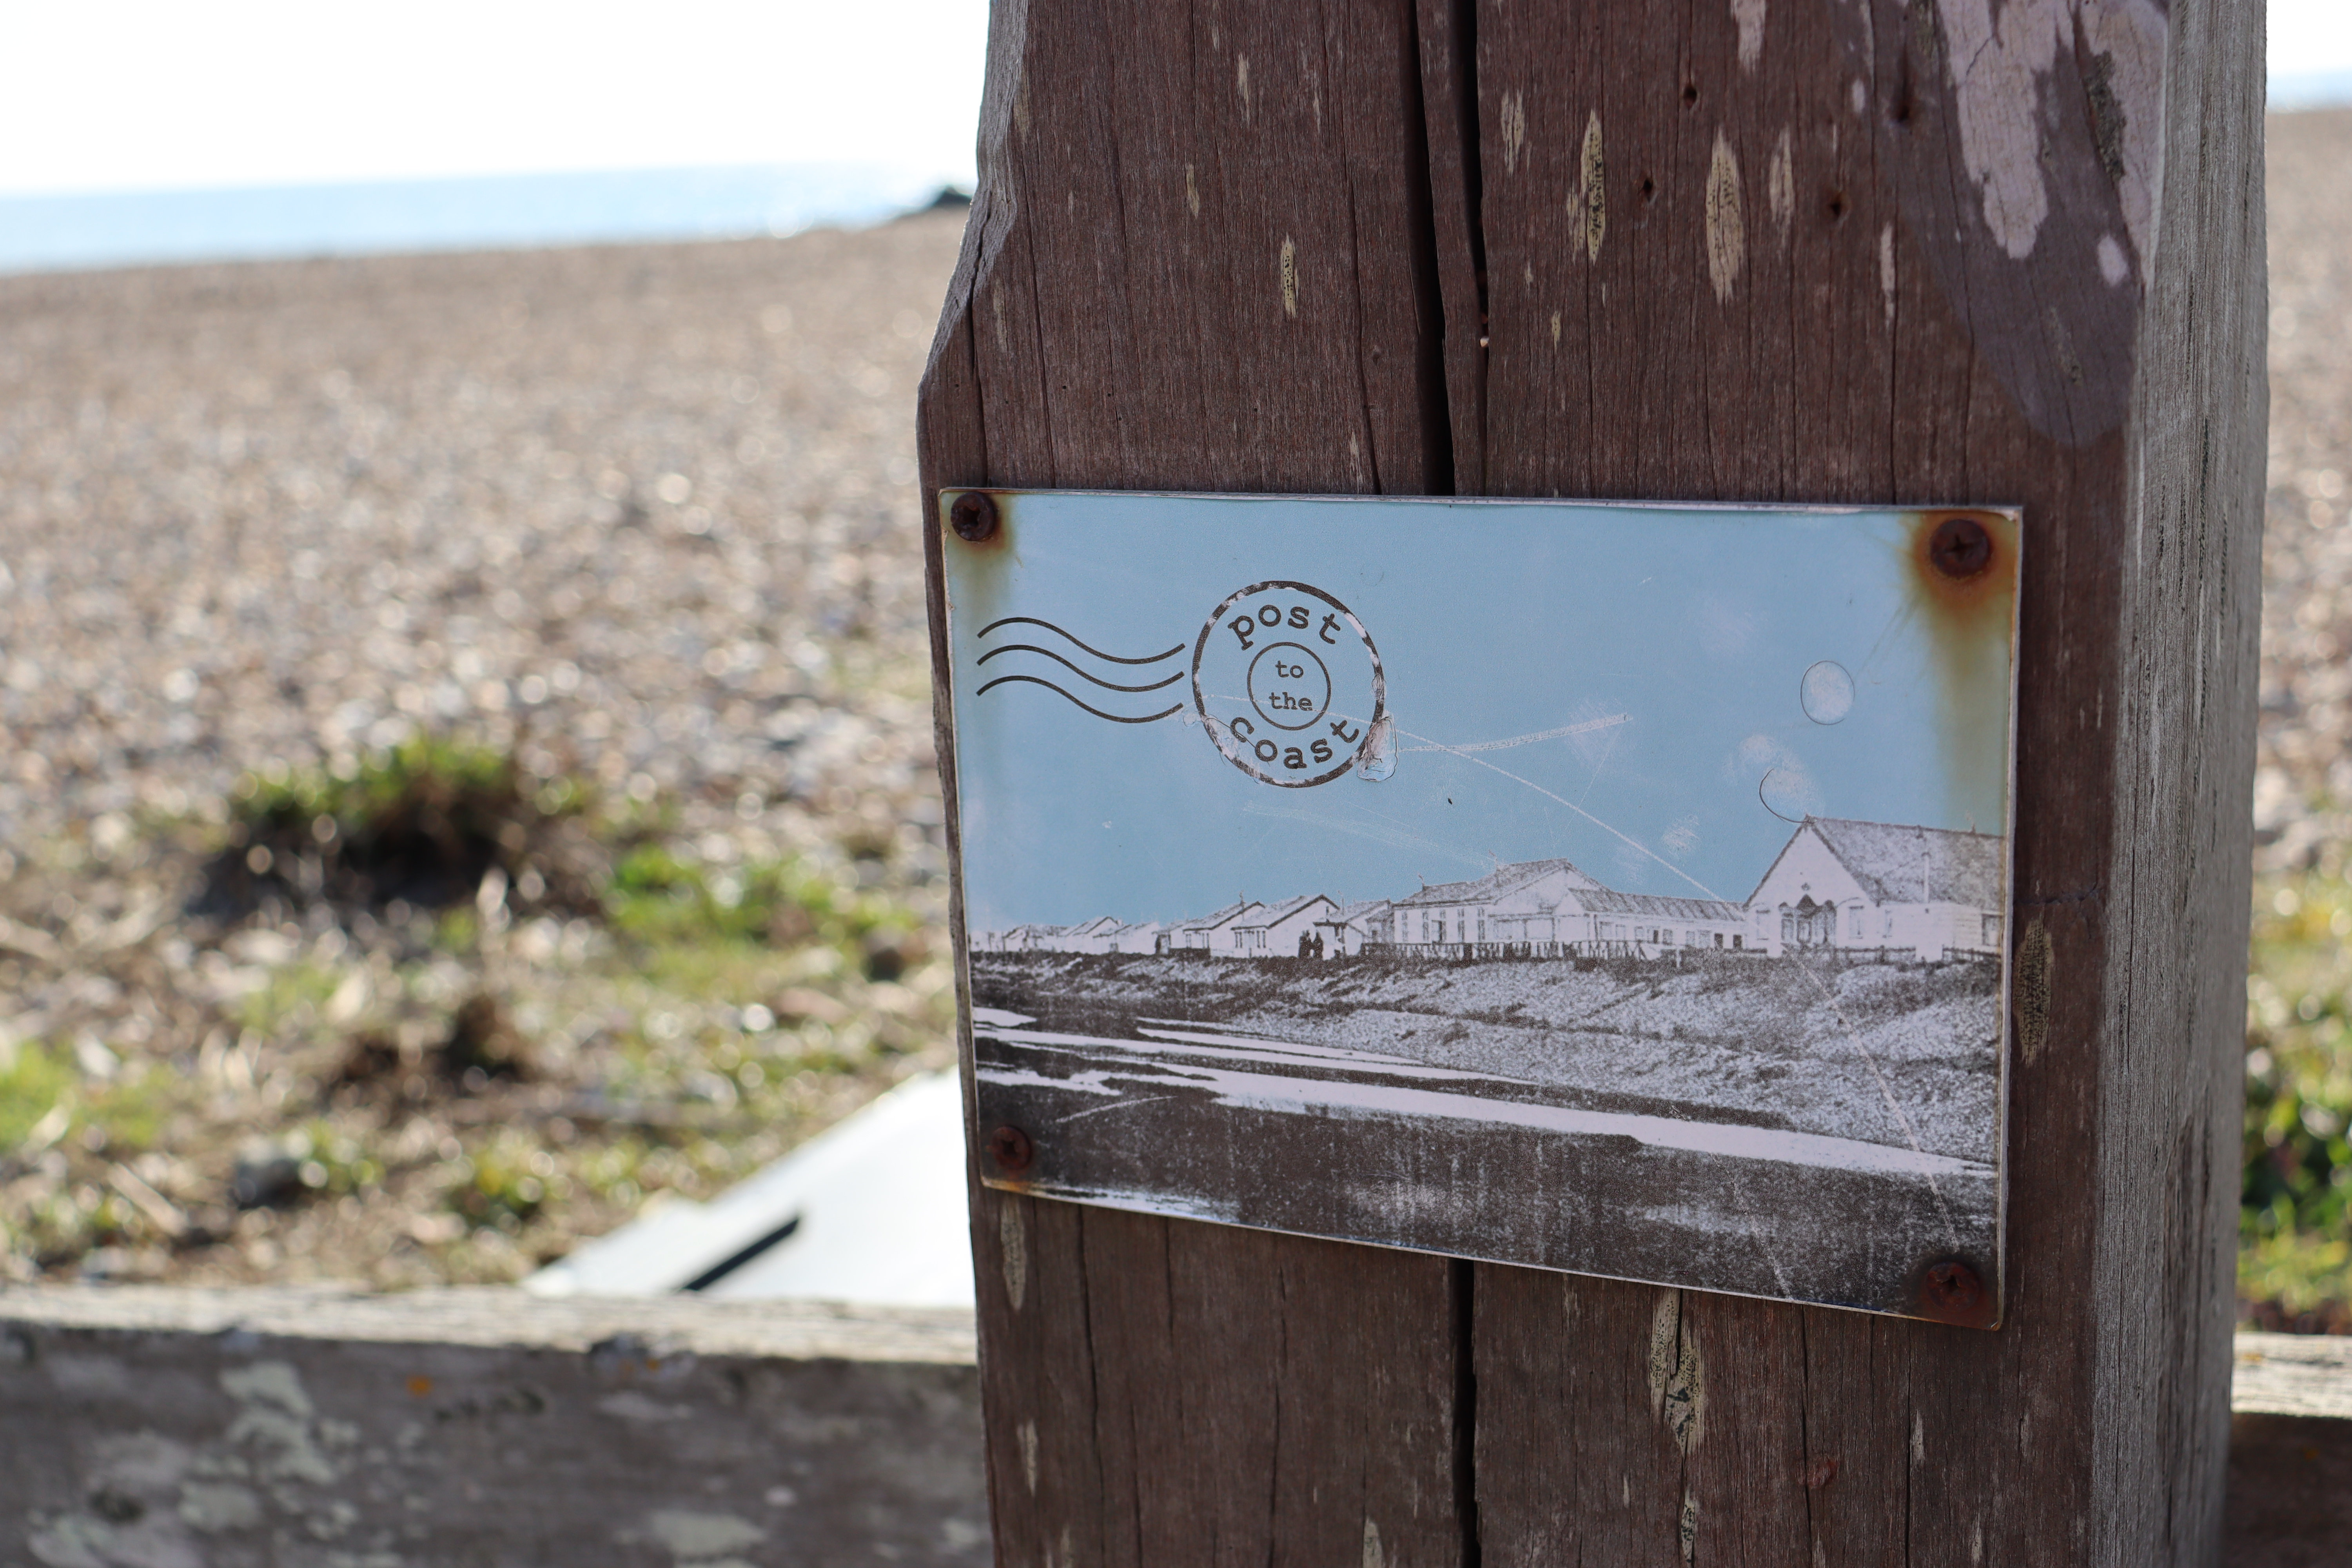 A black and white ceramic postcard attached to a wooden post with rusted screws.